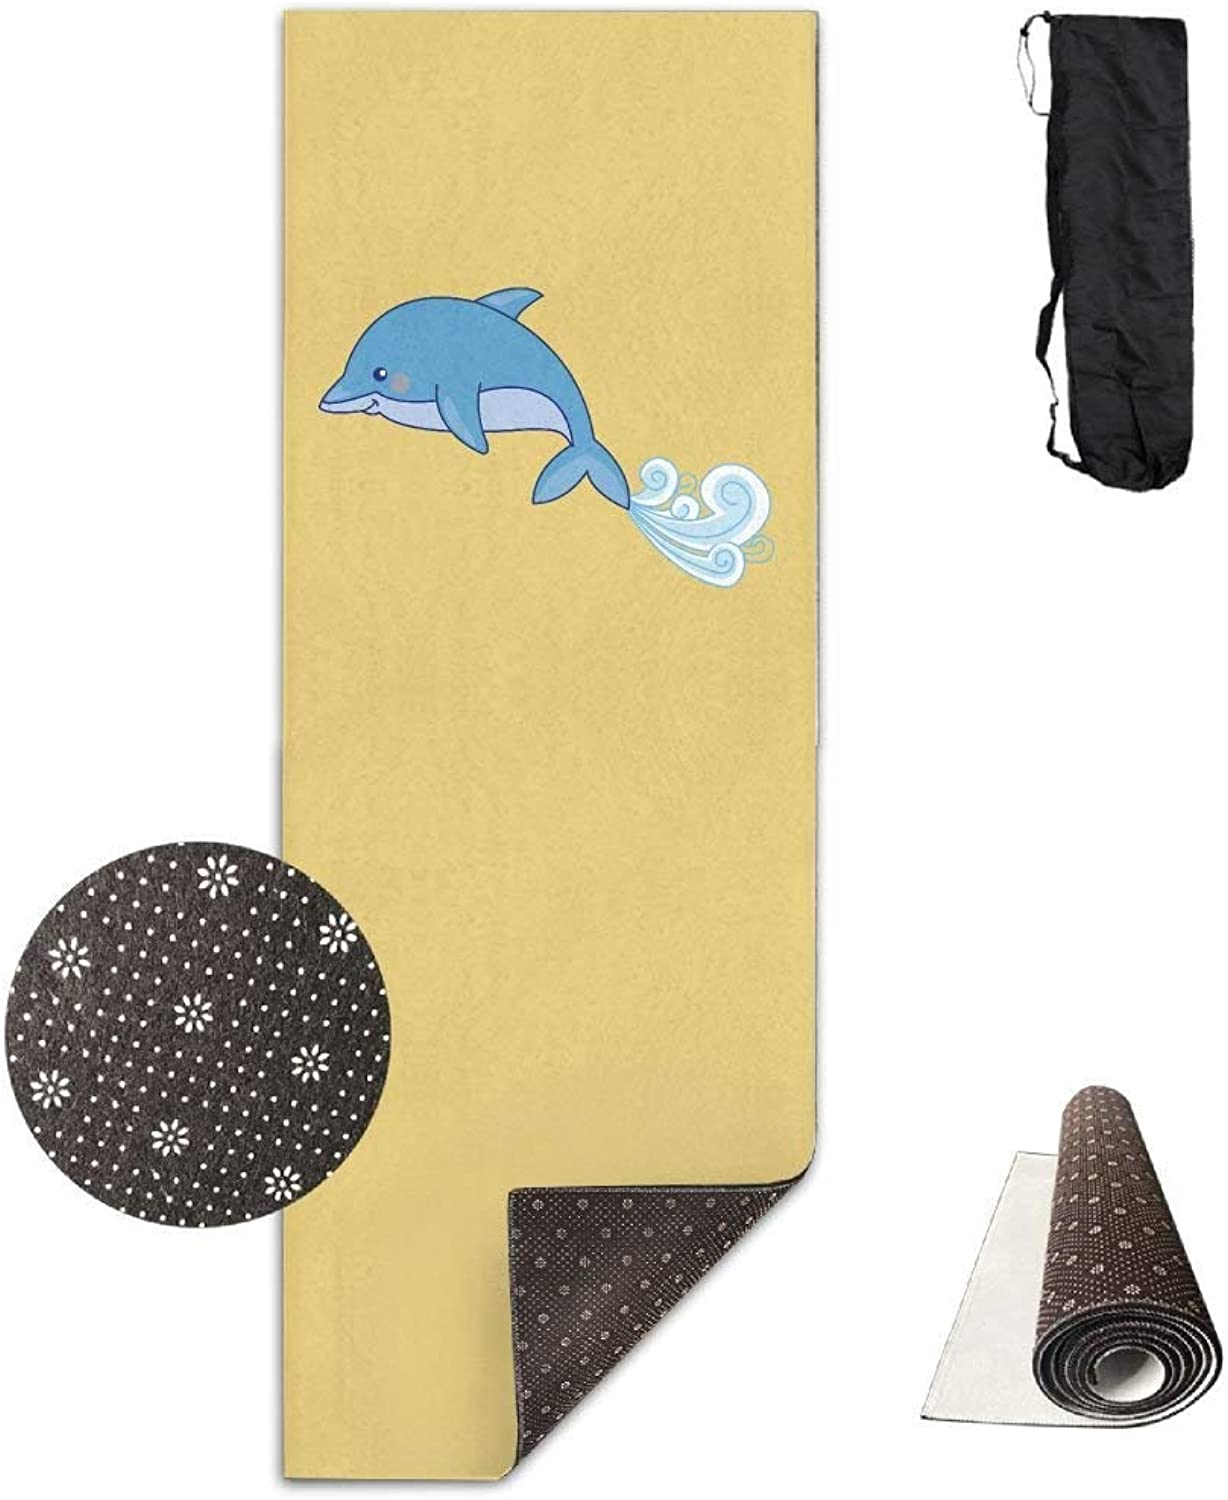 Yoga Mat Non Slip Dolphins Printed 24 X 71 Inches Premium for Fitness Exercise Pilates with Carrying Strap